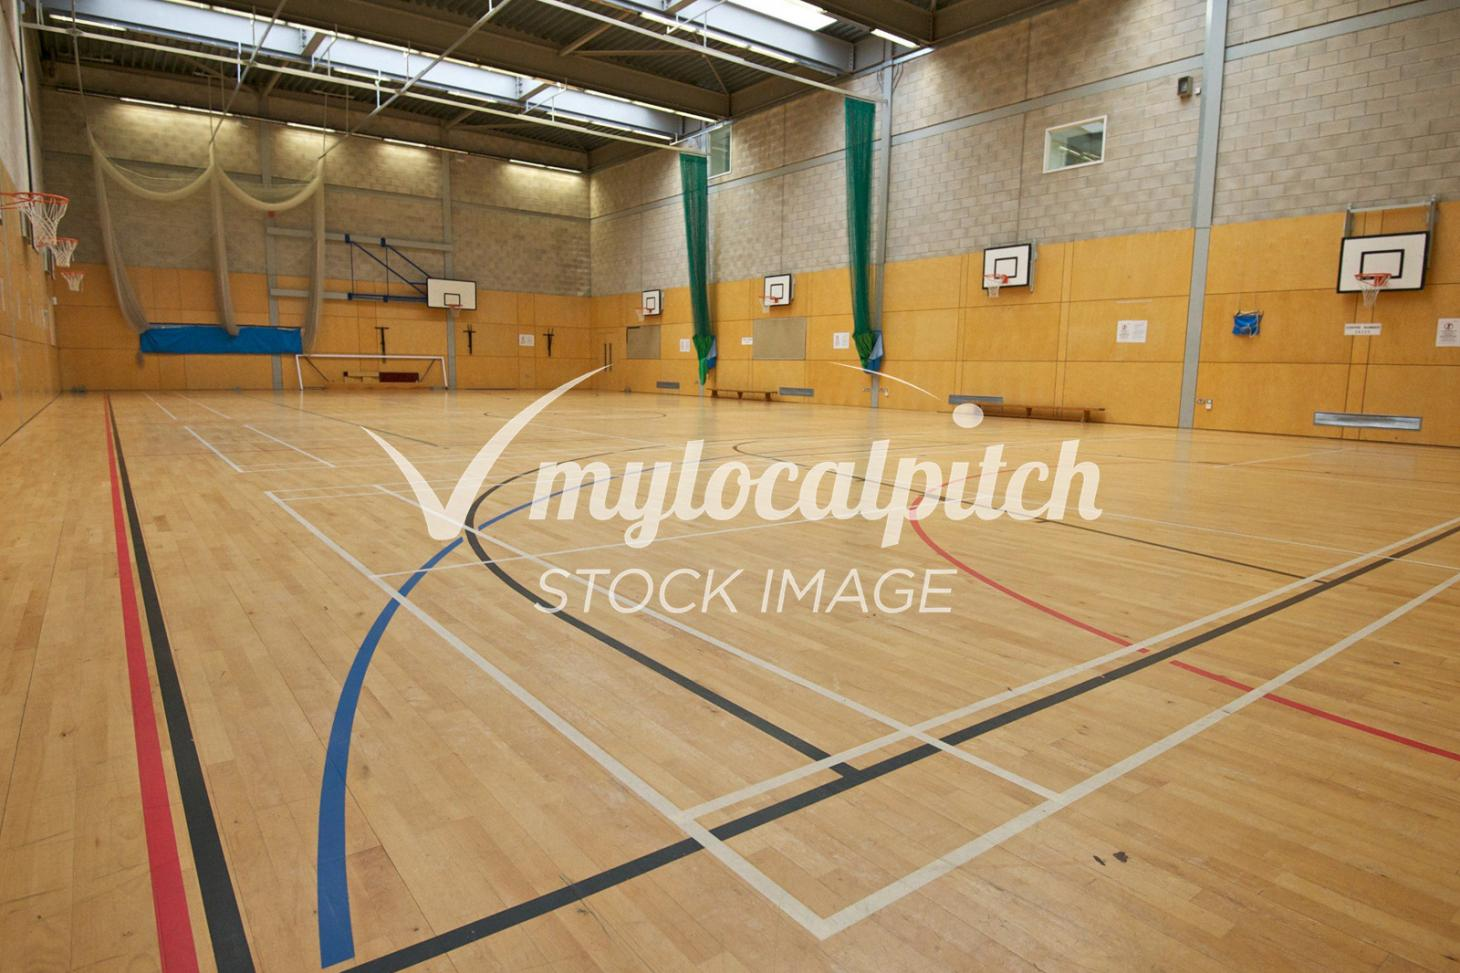 Francis Combe Academy Indoor basketball court